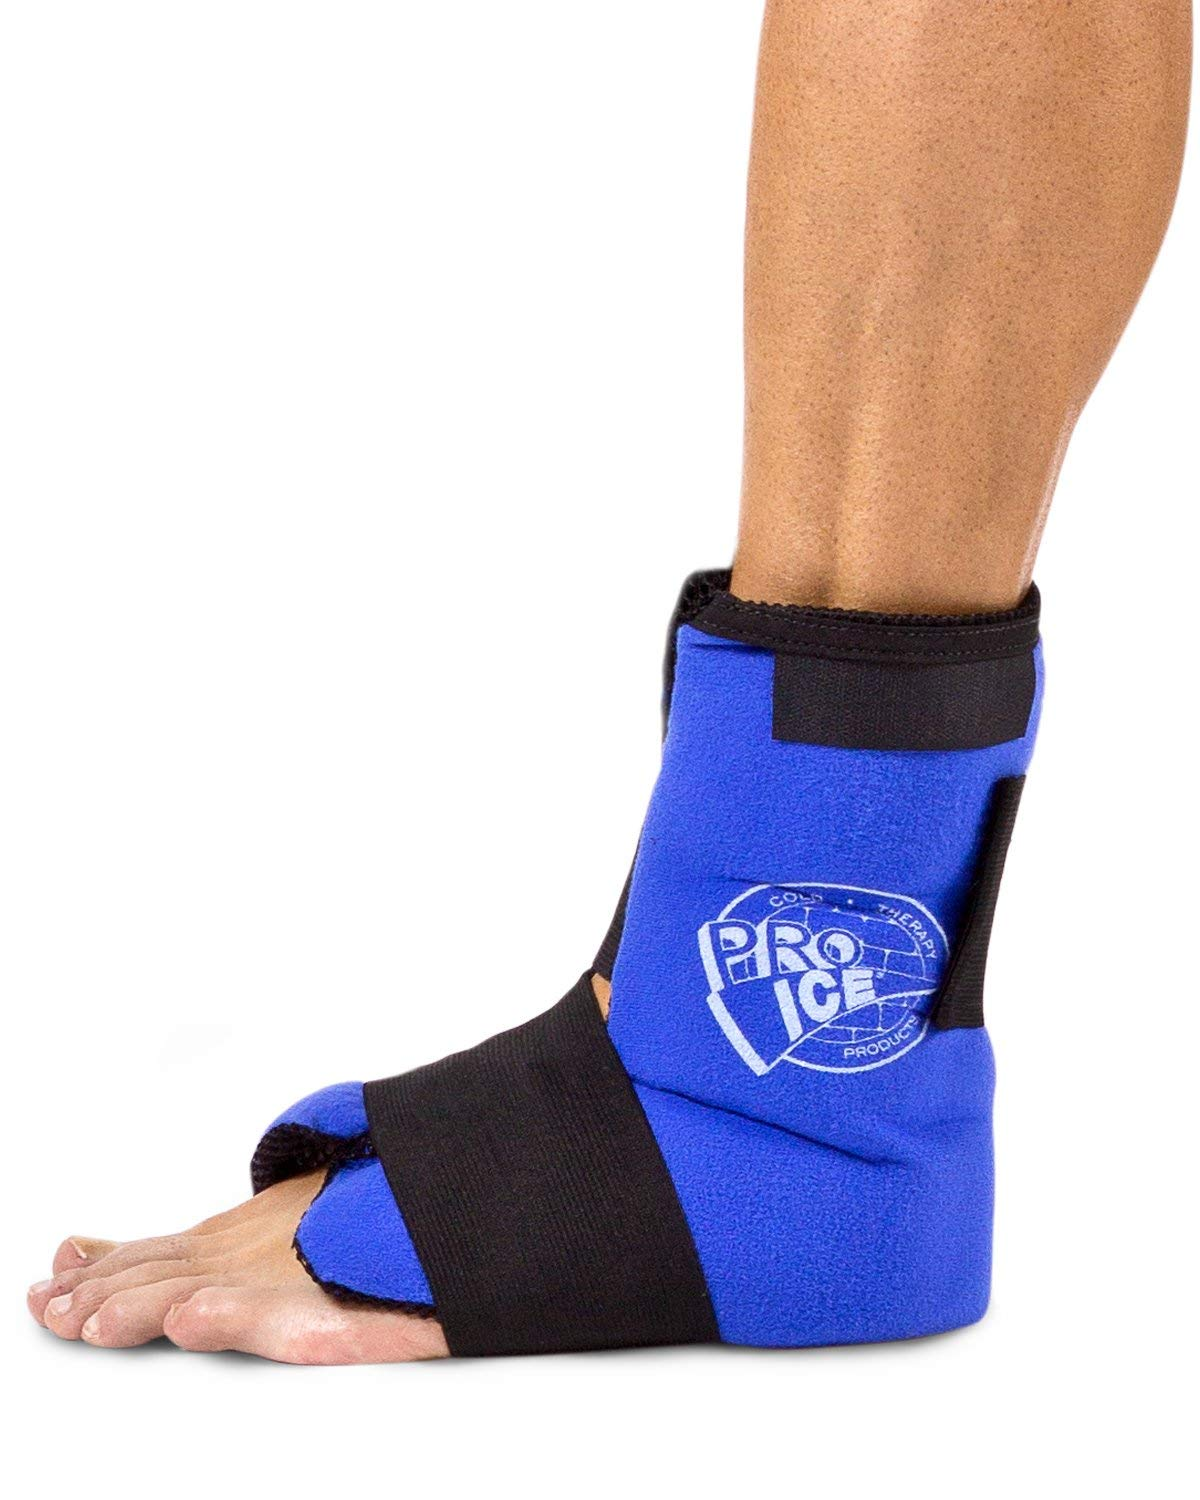 Ankle/Foot Ice Therapy Wrap